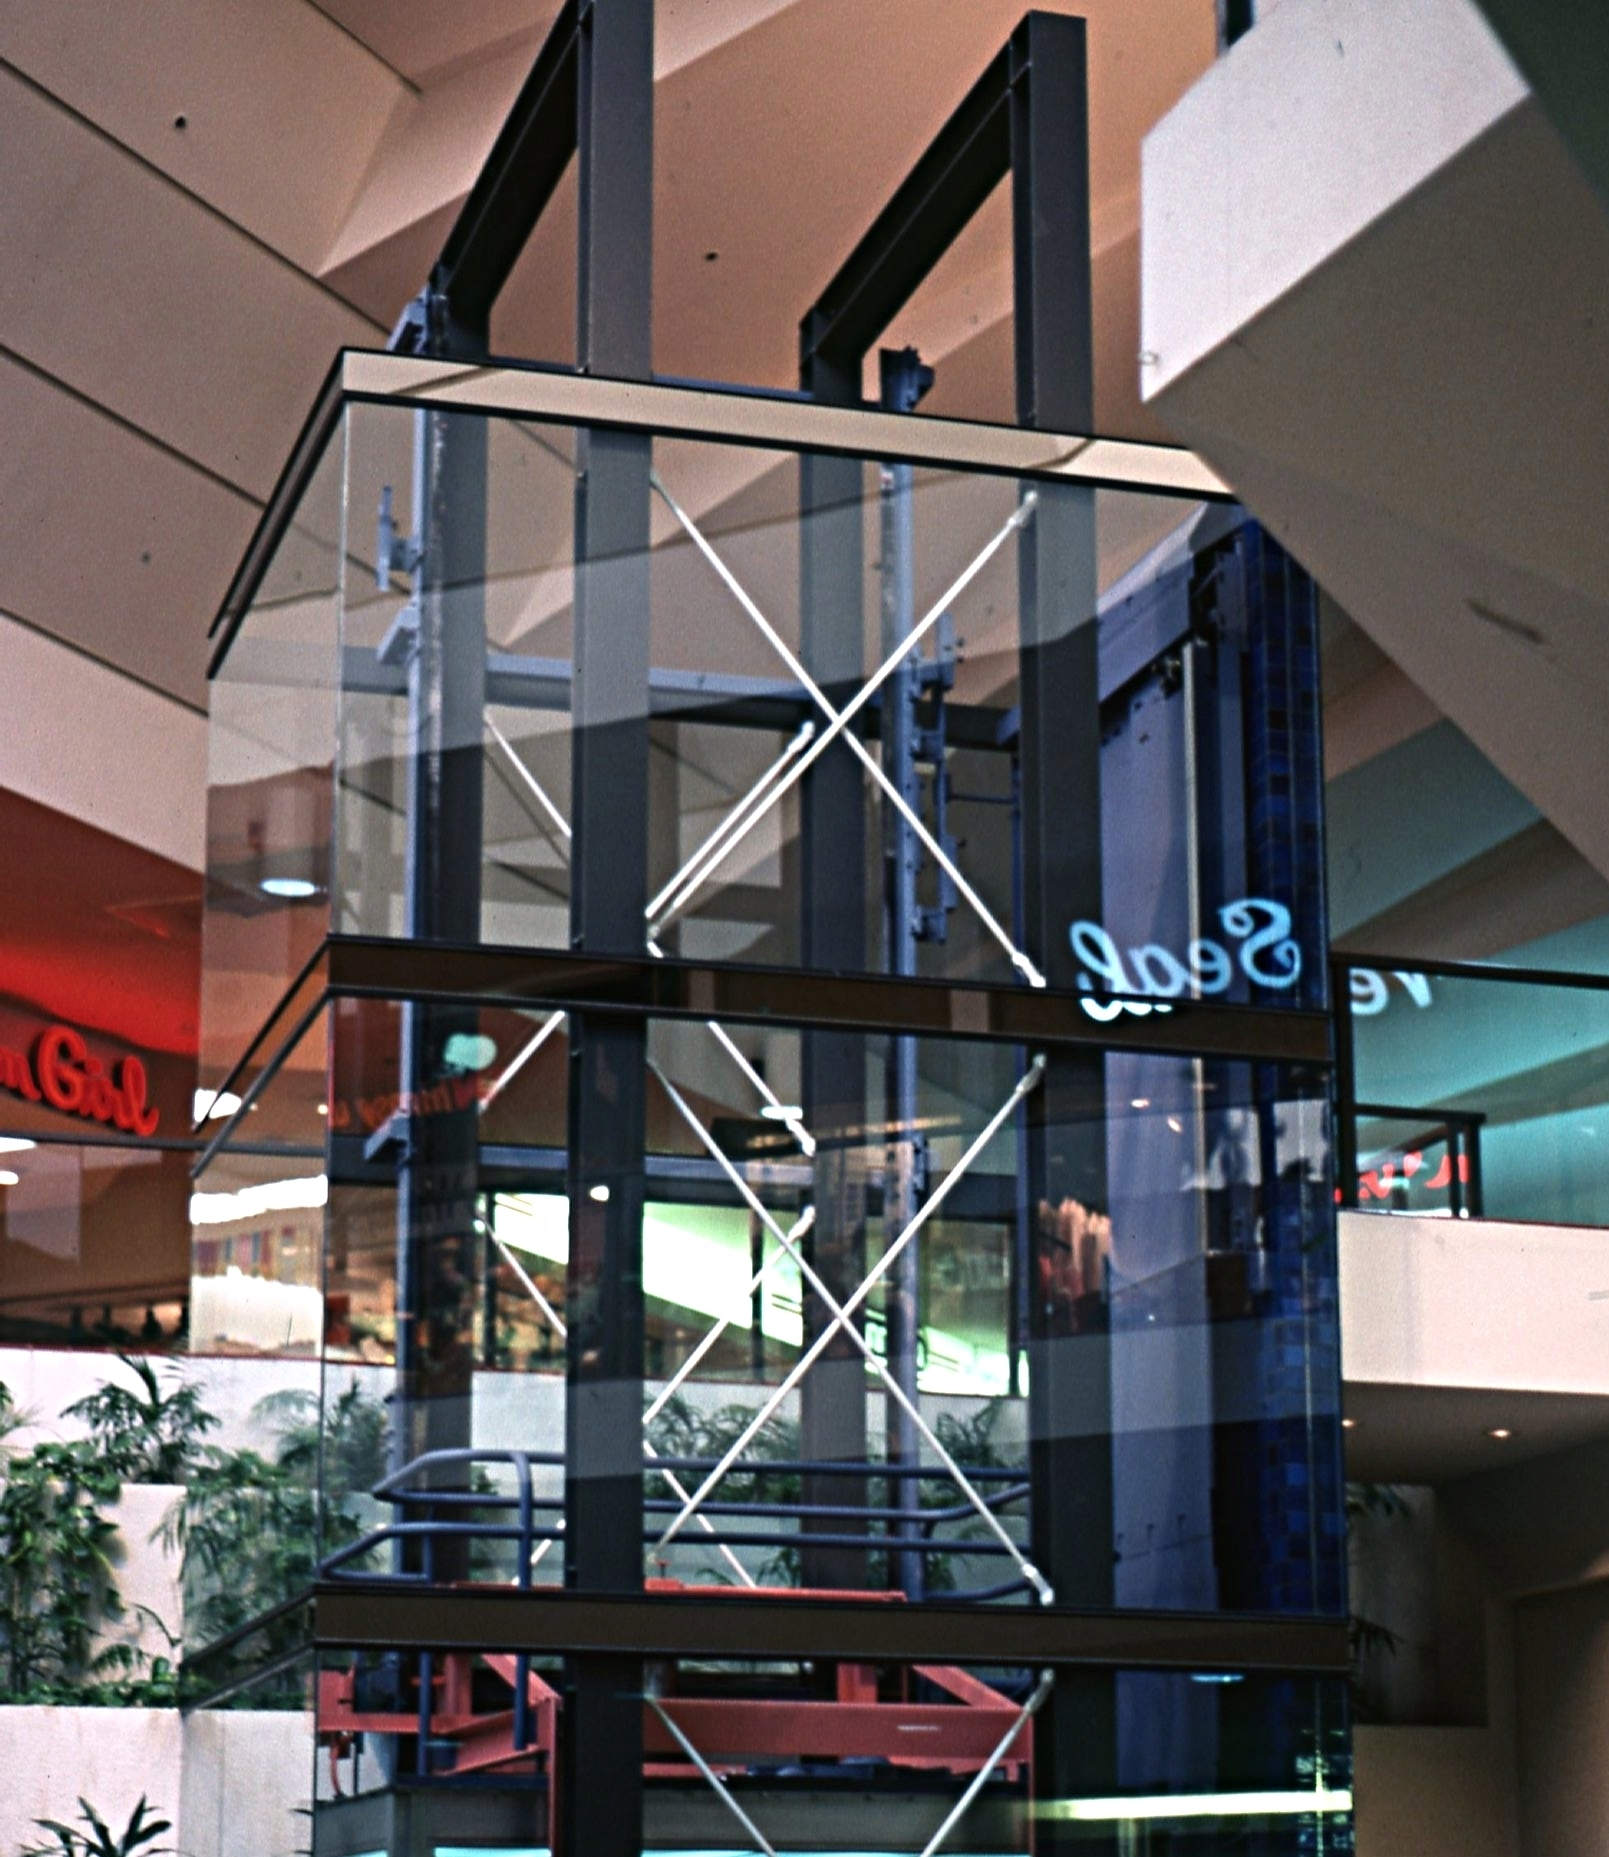 - As a part of the lower level development, two large court areas were added, connecting the upper and lower level malls.  One of the courts contained a glass enclosed elevator